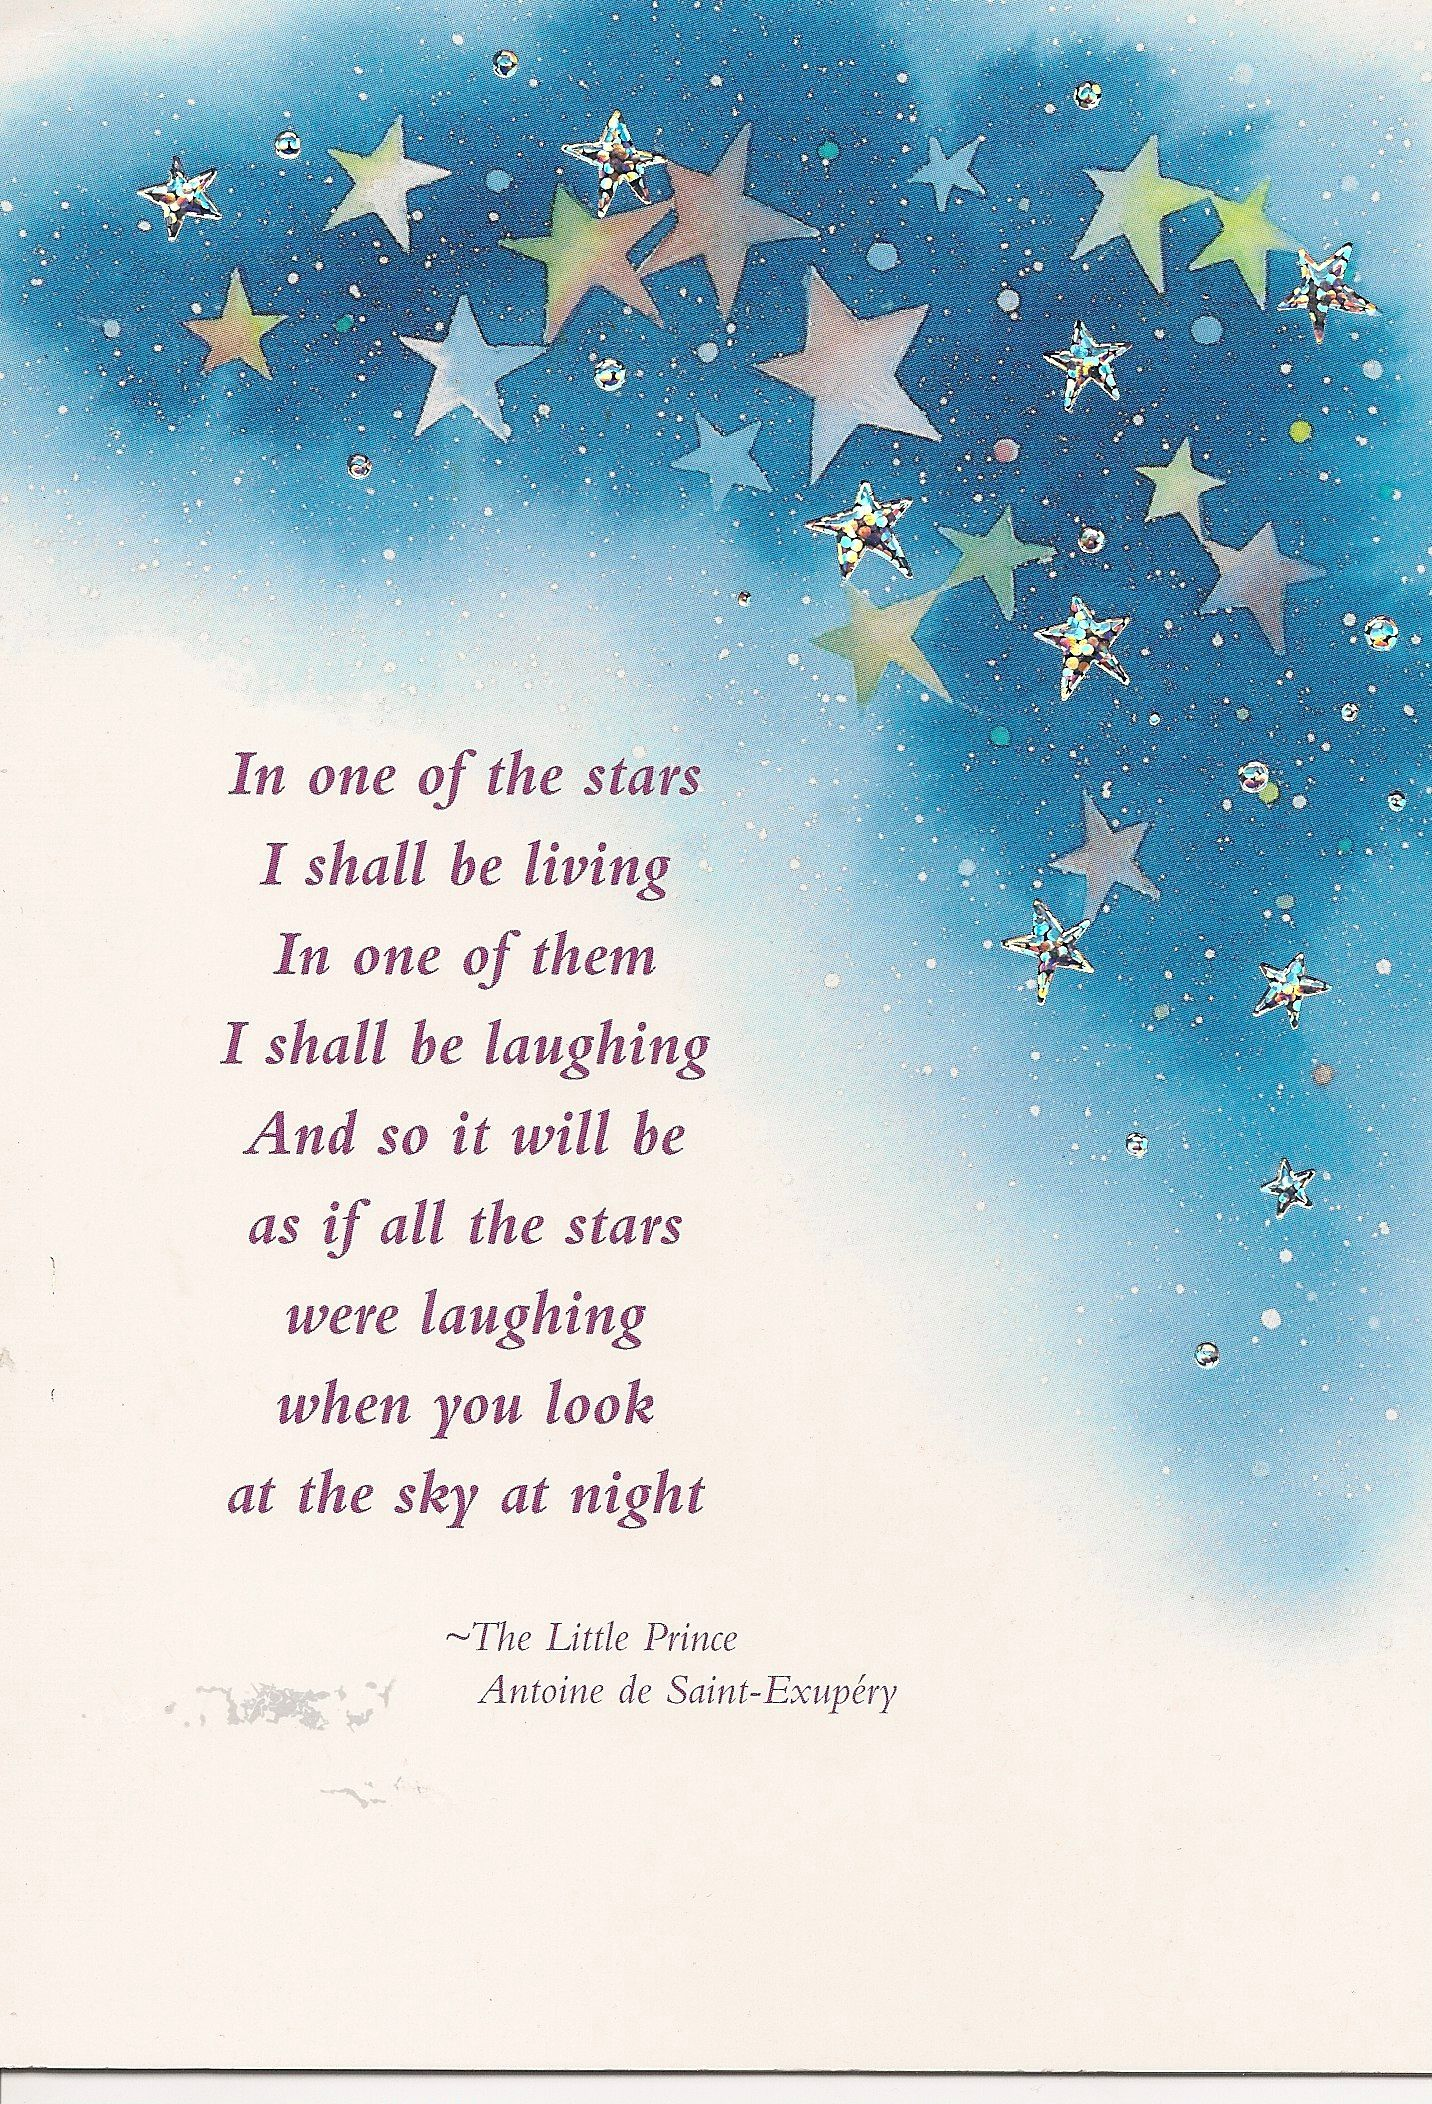 Tales From Twisty Lane One Year Ago In 2020 Little Prince Quotes Prince Quotes The Little Prince